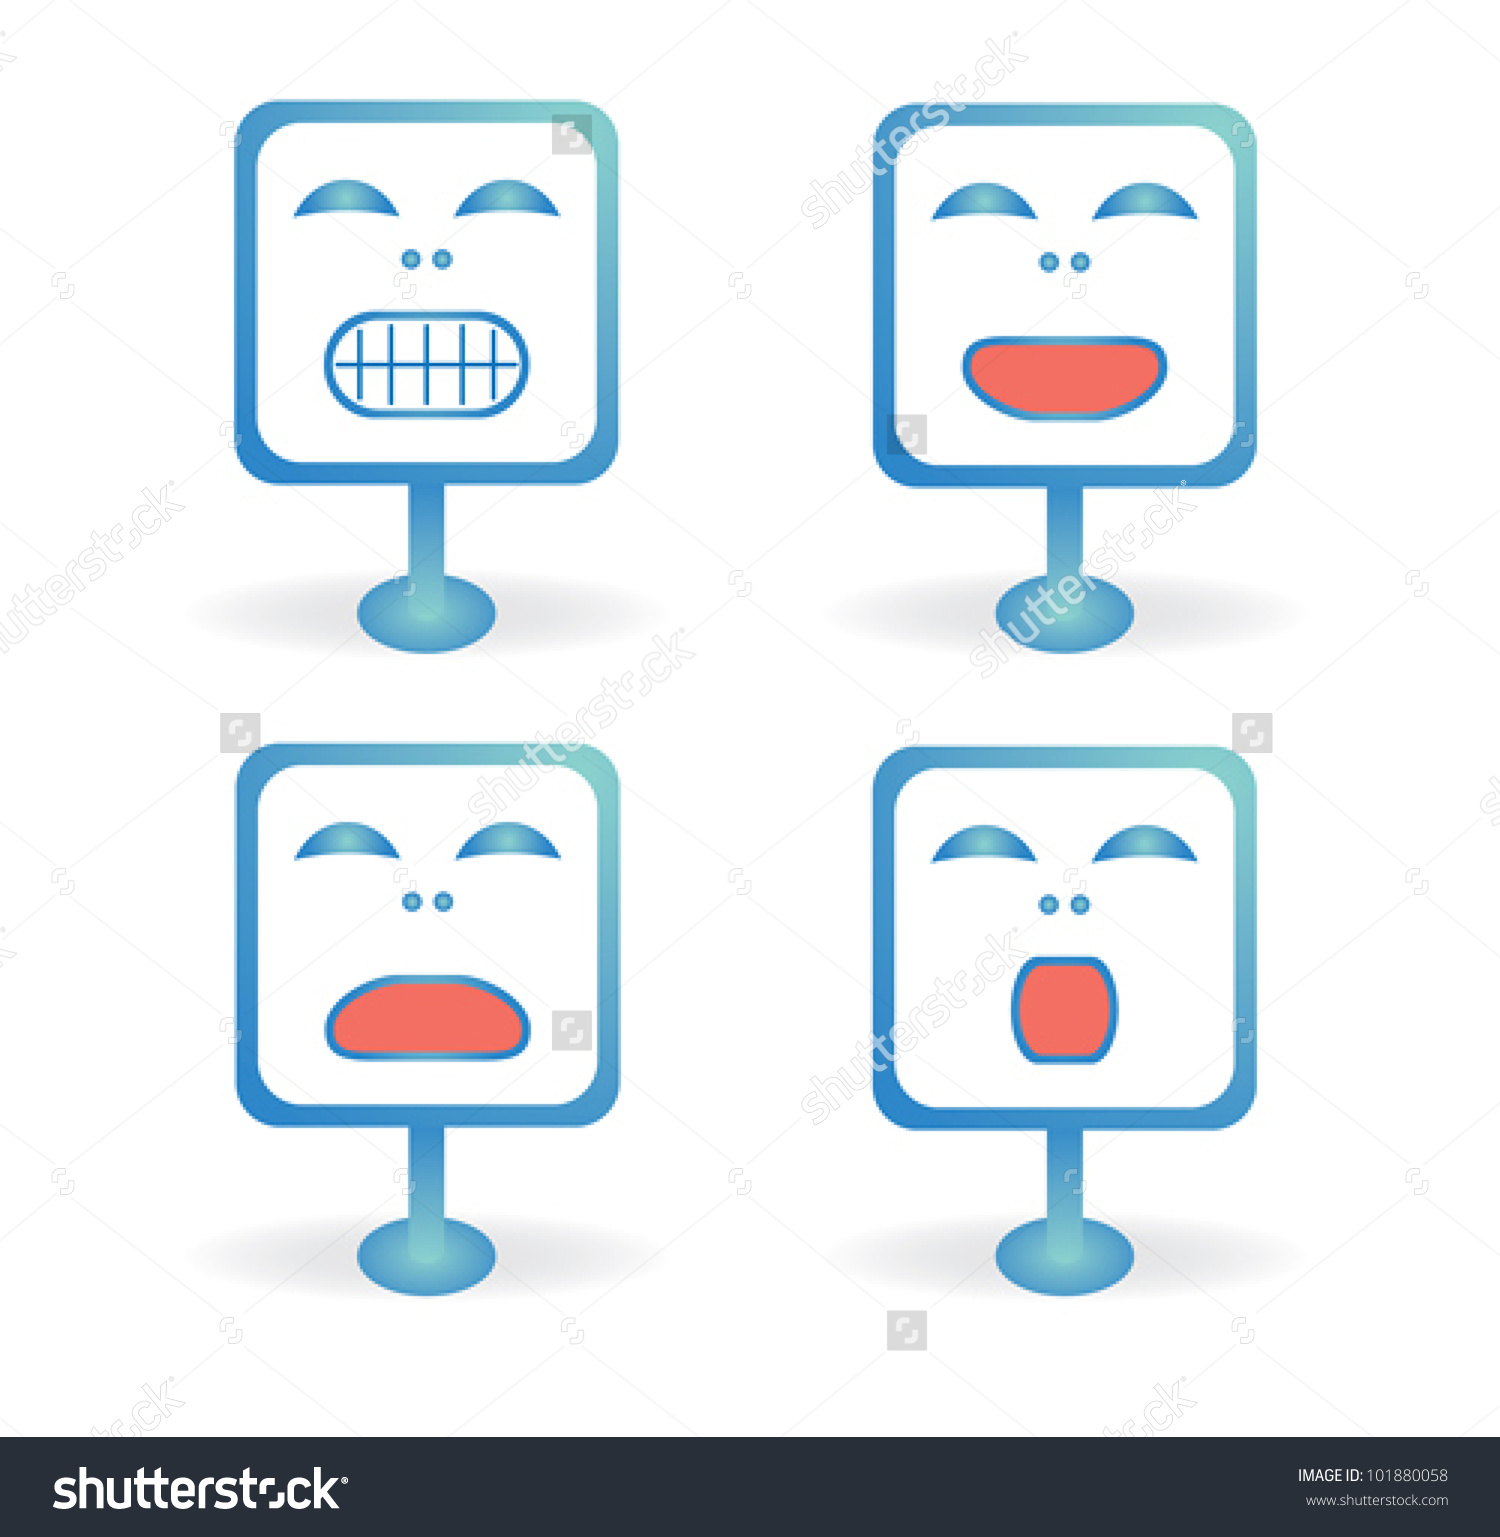 Four Icons Smiley Face In The Different Emotions On The Blue.